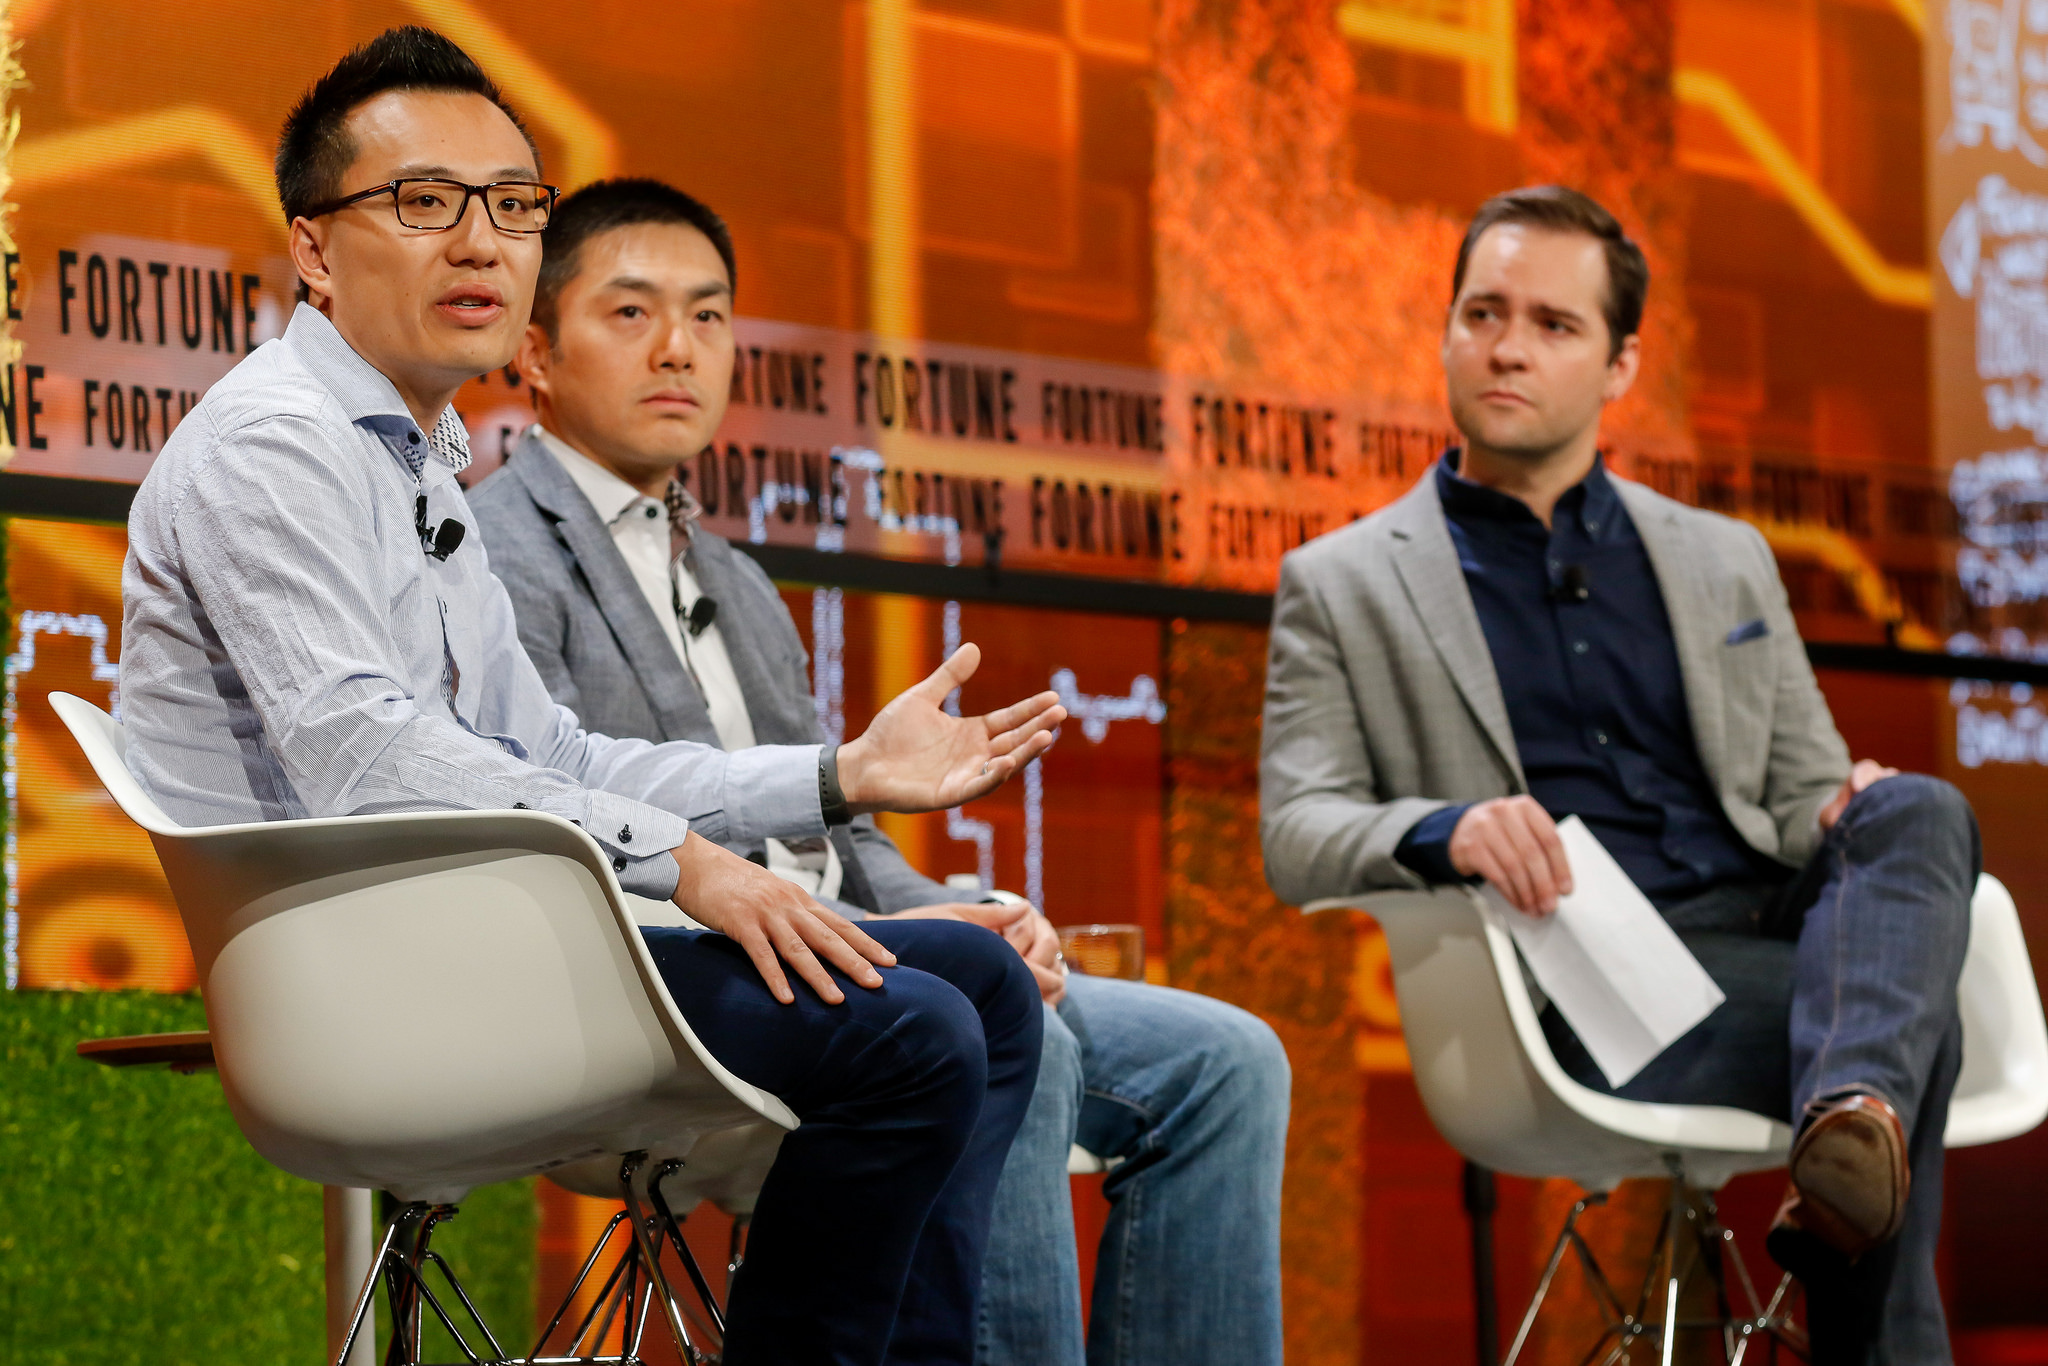 DoorDash CEO Tony Xu, Sequoia Capital's Alfred Lin, and Fortune's Andrew Nusca at Fortune Brainstorm Tech 2018 in Aspen, Colo.